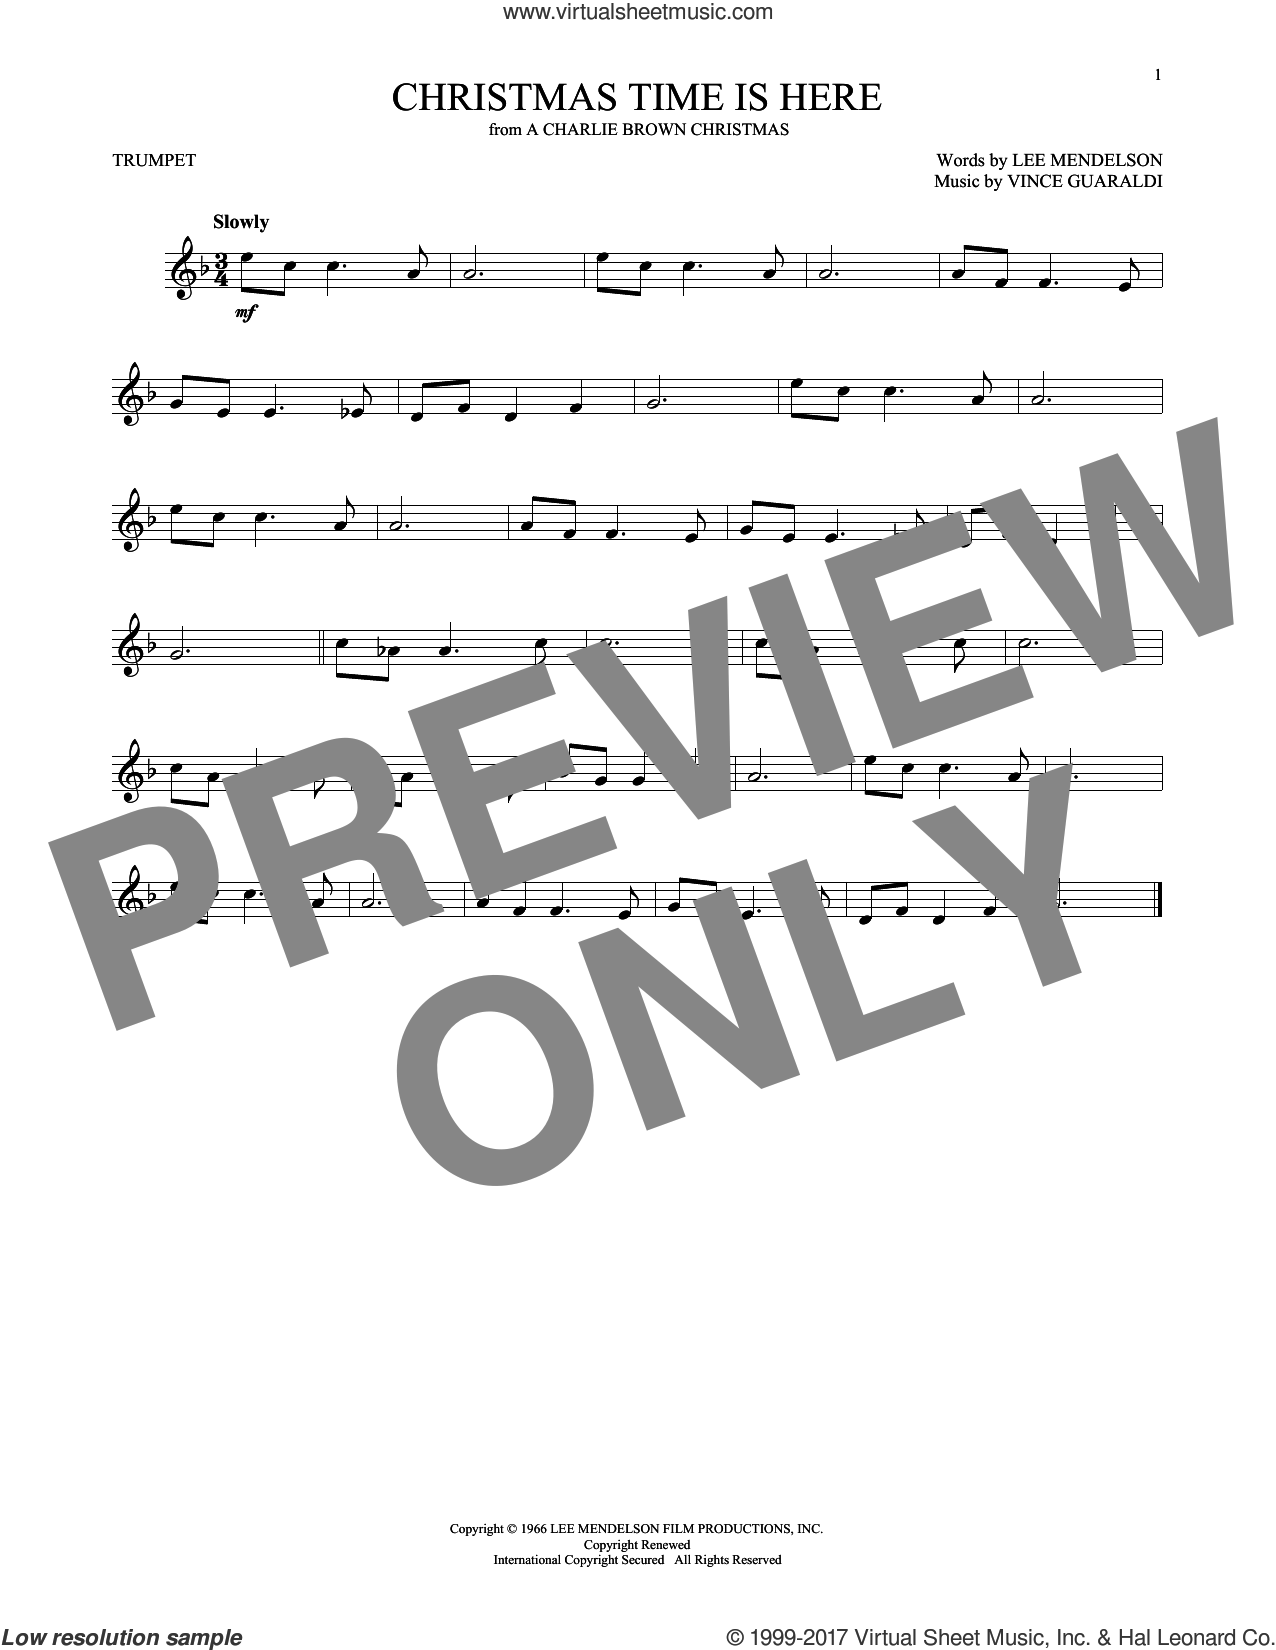 Christmas Time Is Here sheet music for trumpet solo by Vince Guaraldi and Lee Mendelson, intermediate skill level